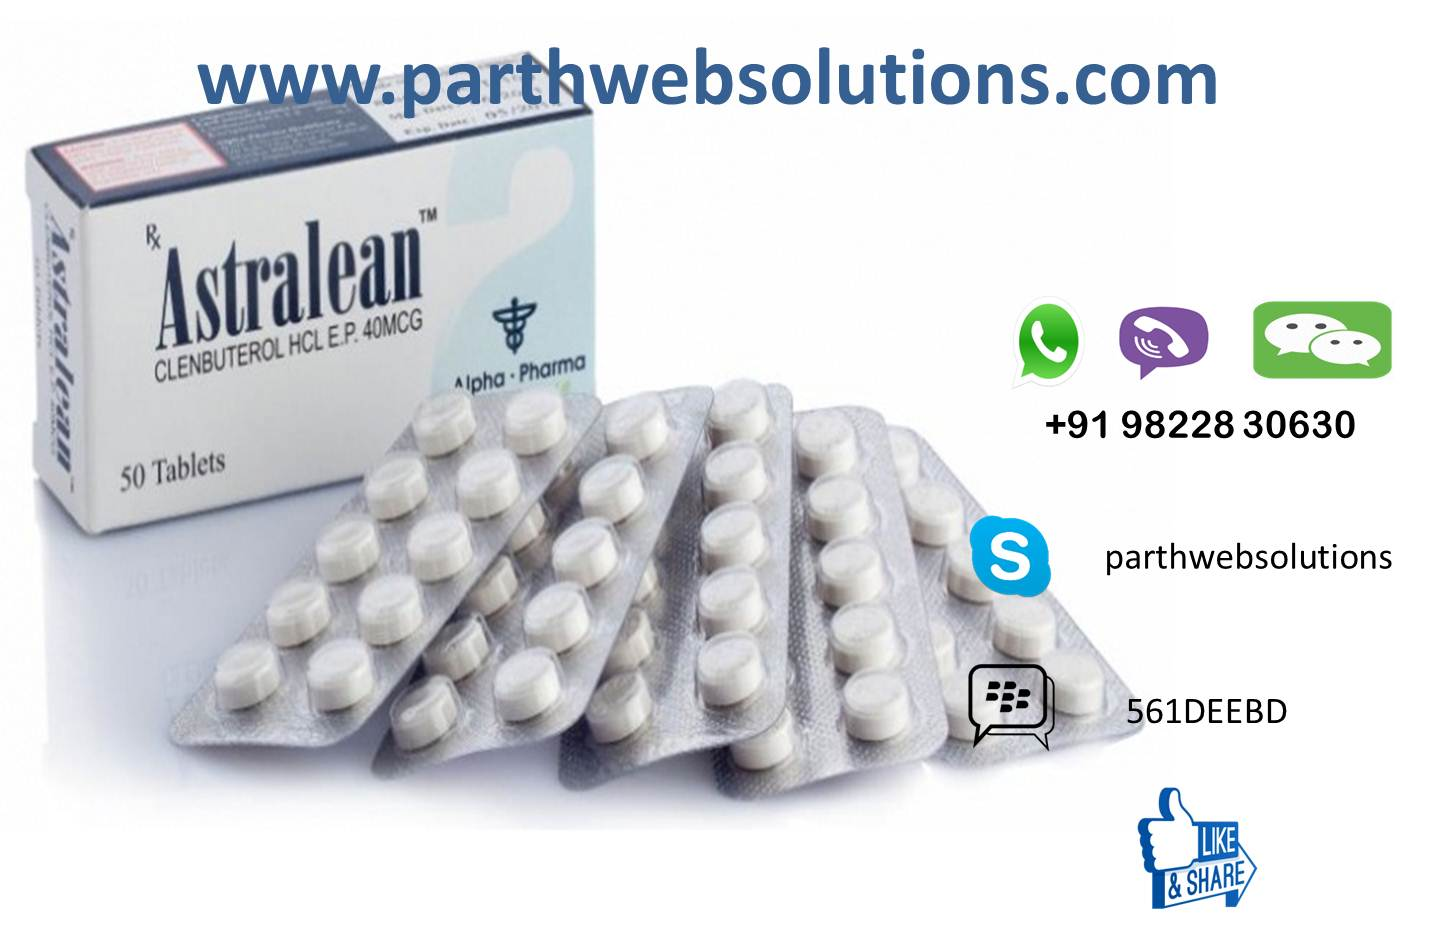 Astralean (Clenbuterol HCL Tablets)